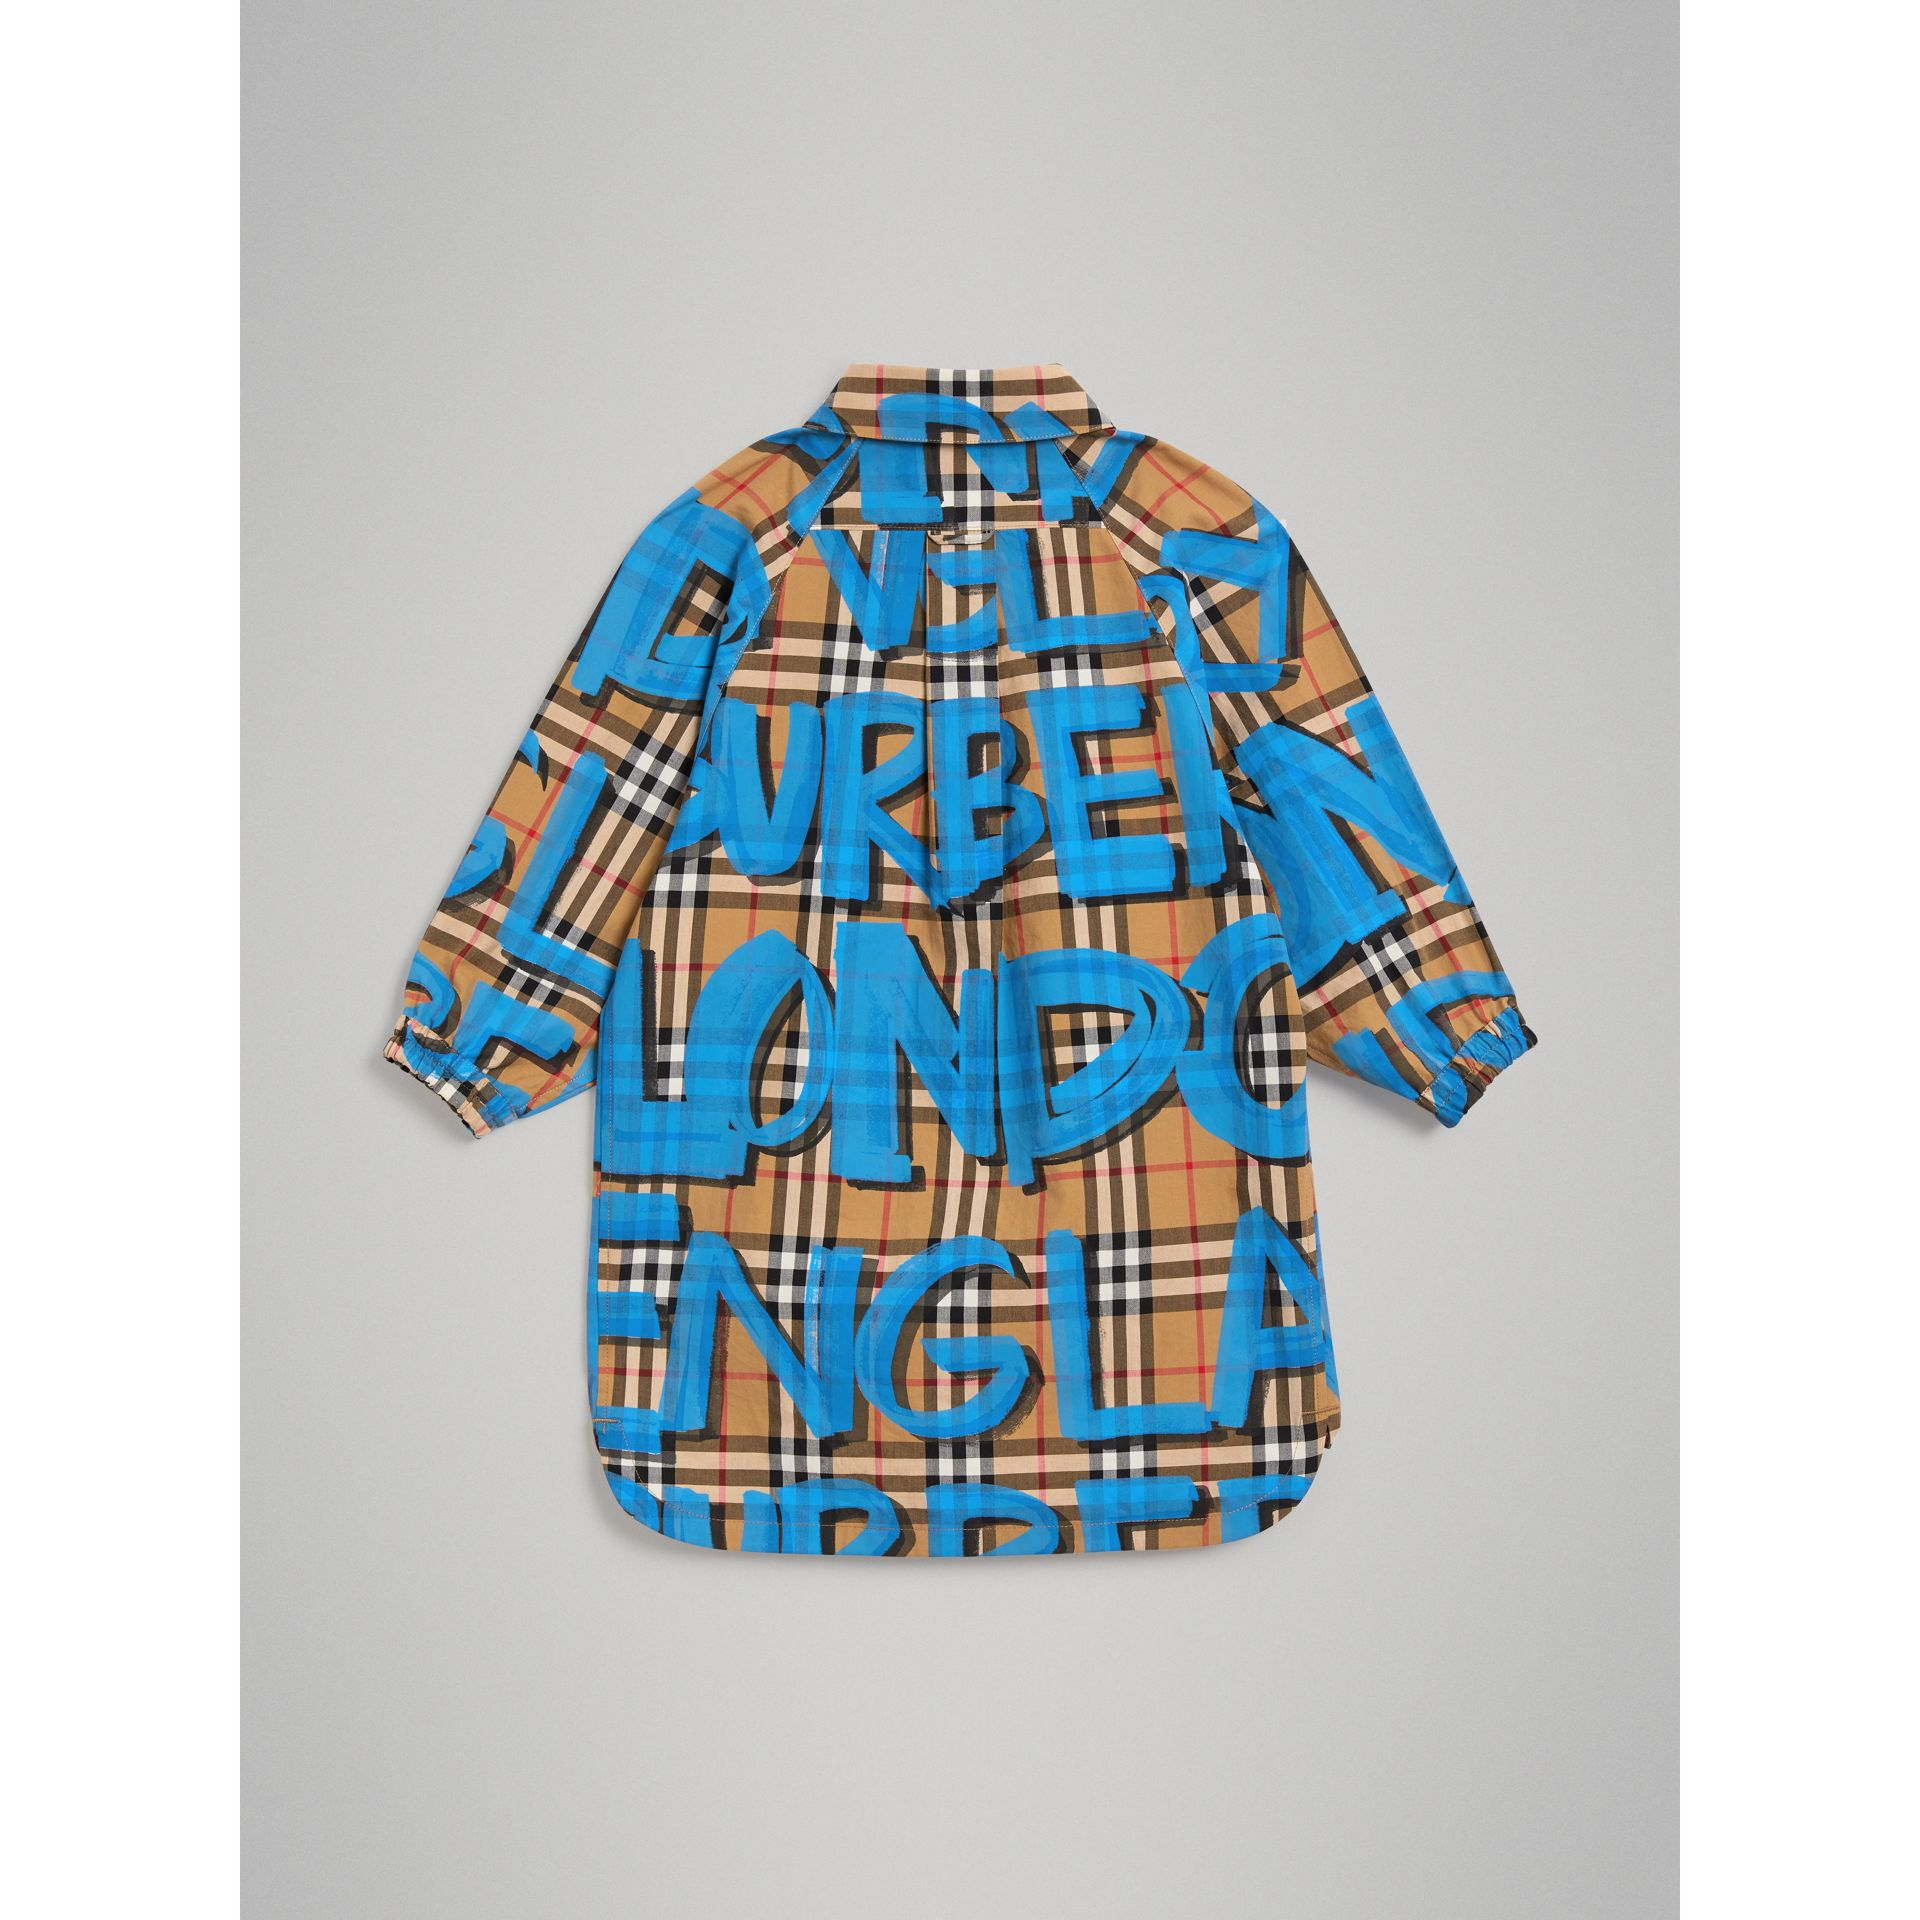 Graffiti Print Vintage Check Cotton Shirt Dress in Bright Blue | Burberry - gallery image 3